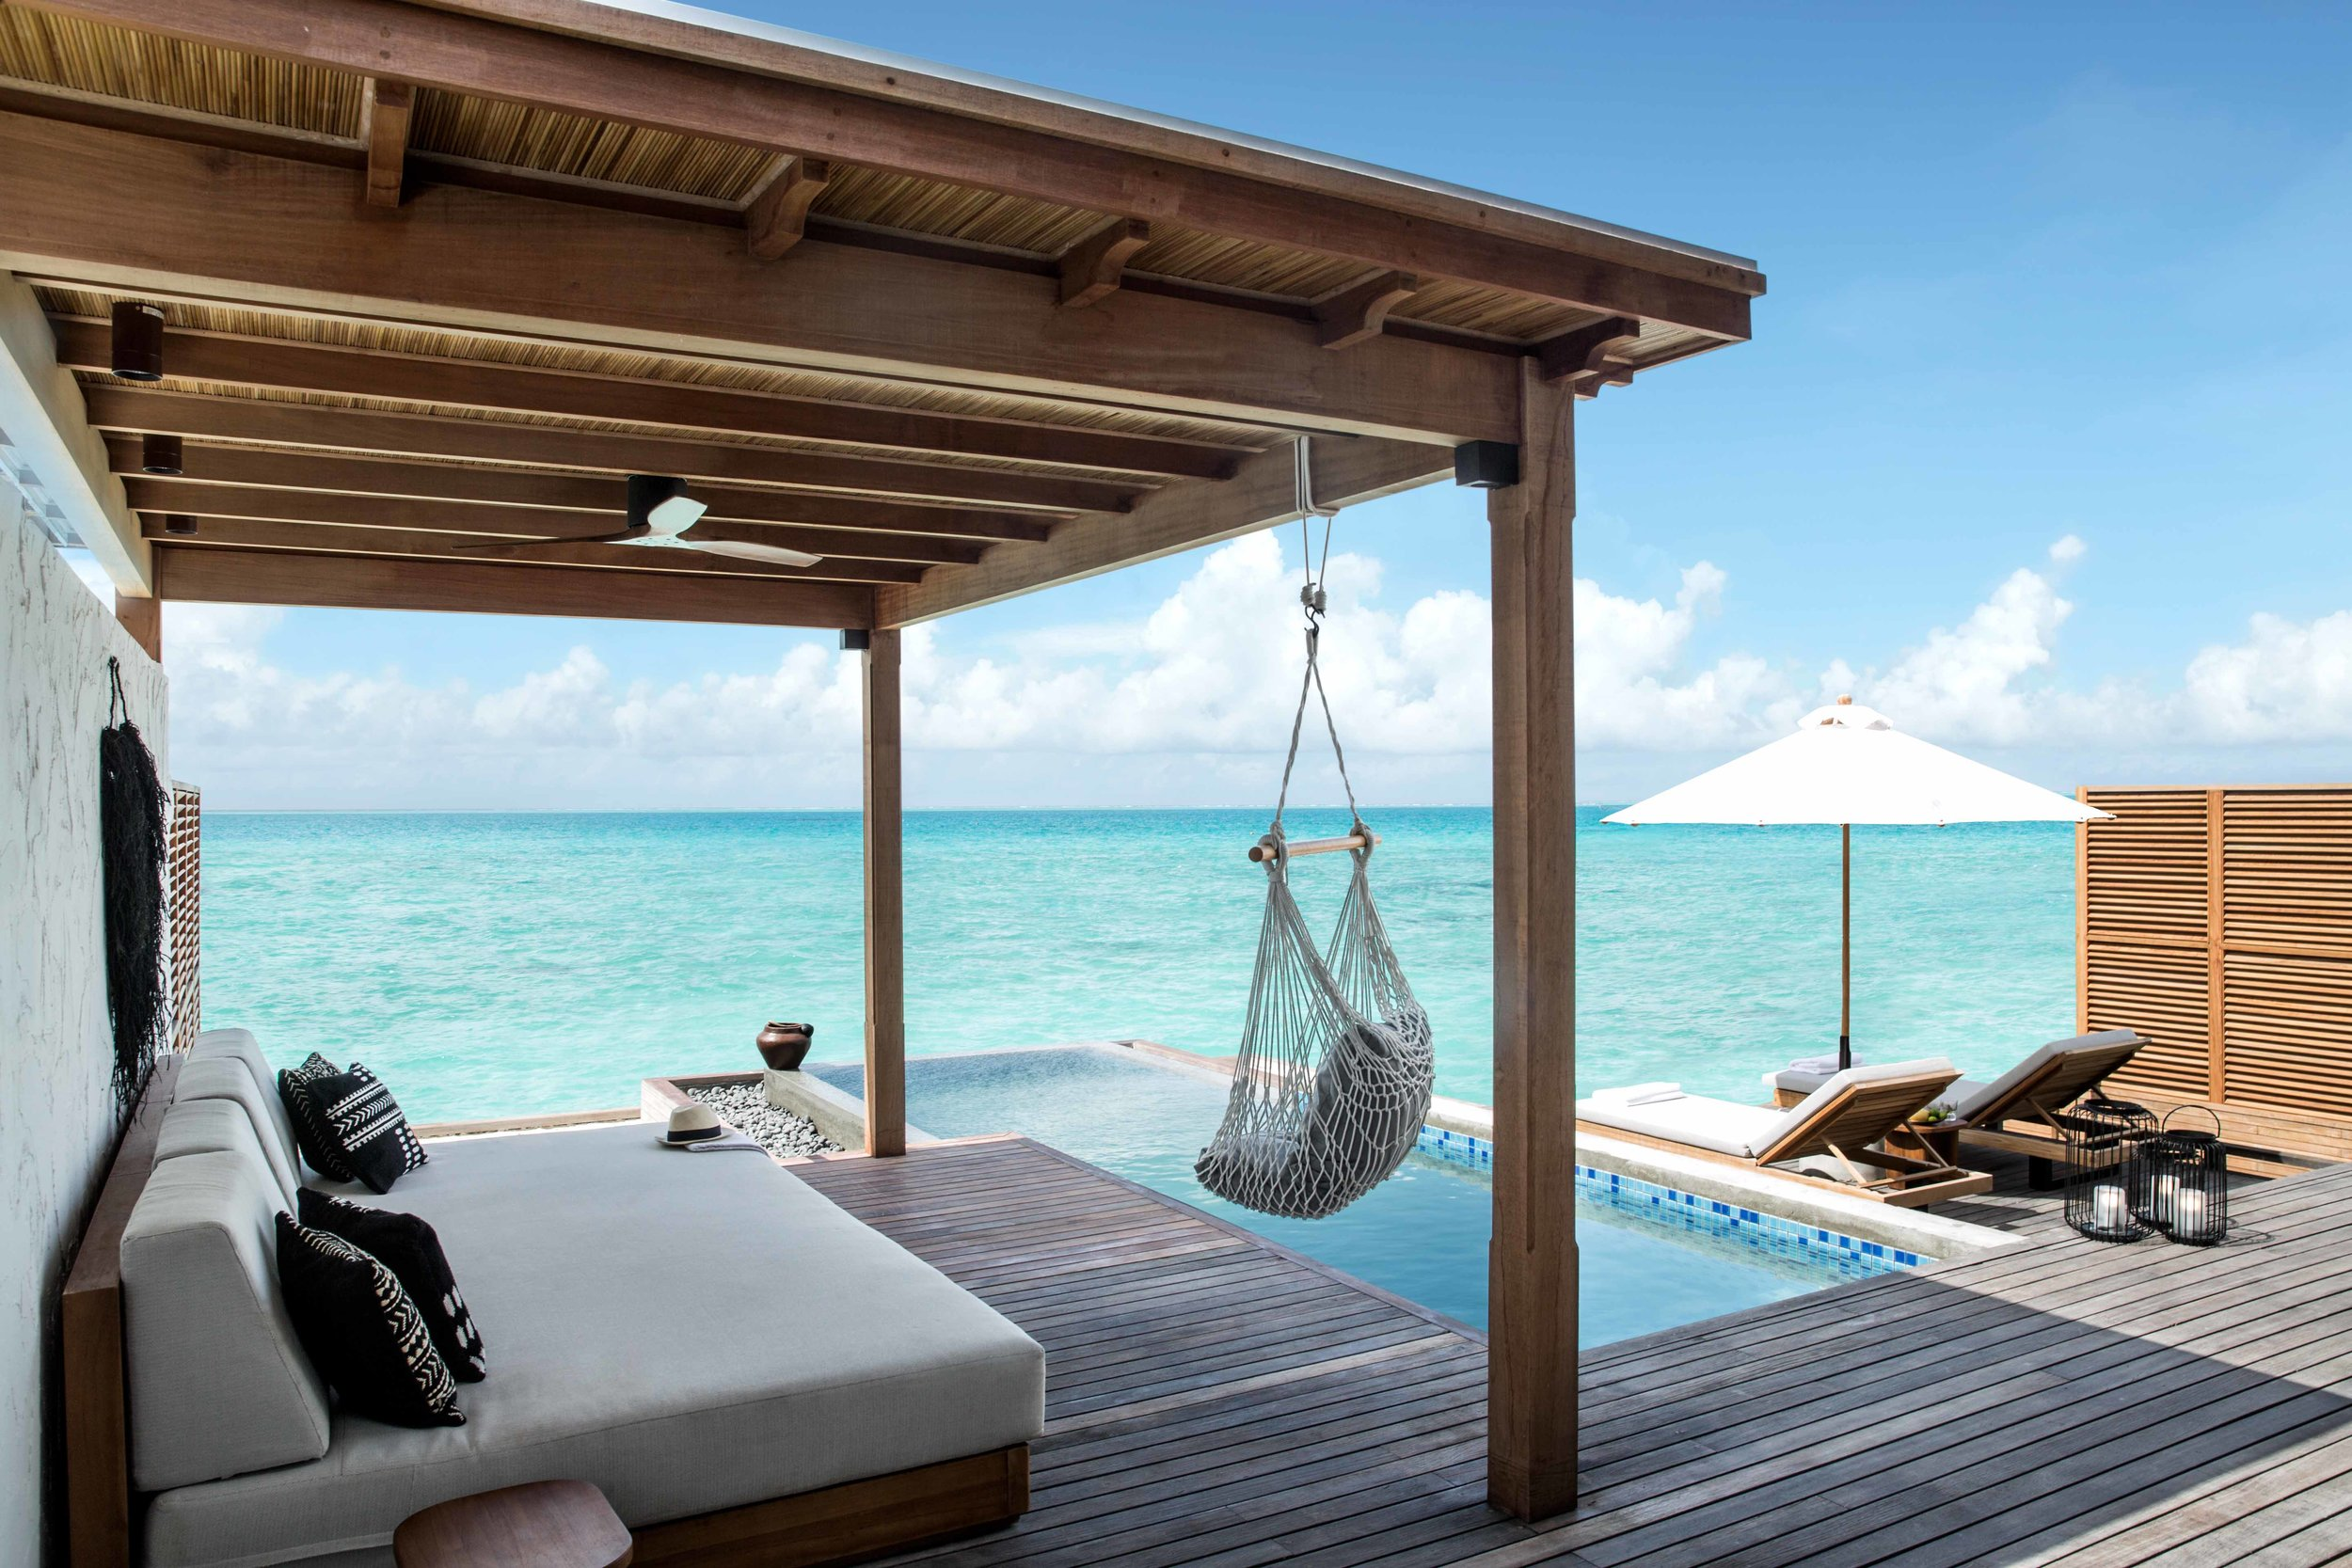 Photo Credit: Fairmont Maldives Sirru Fen Fushi